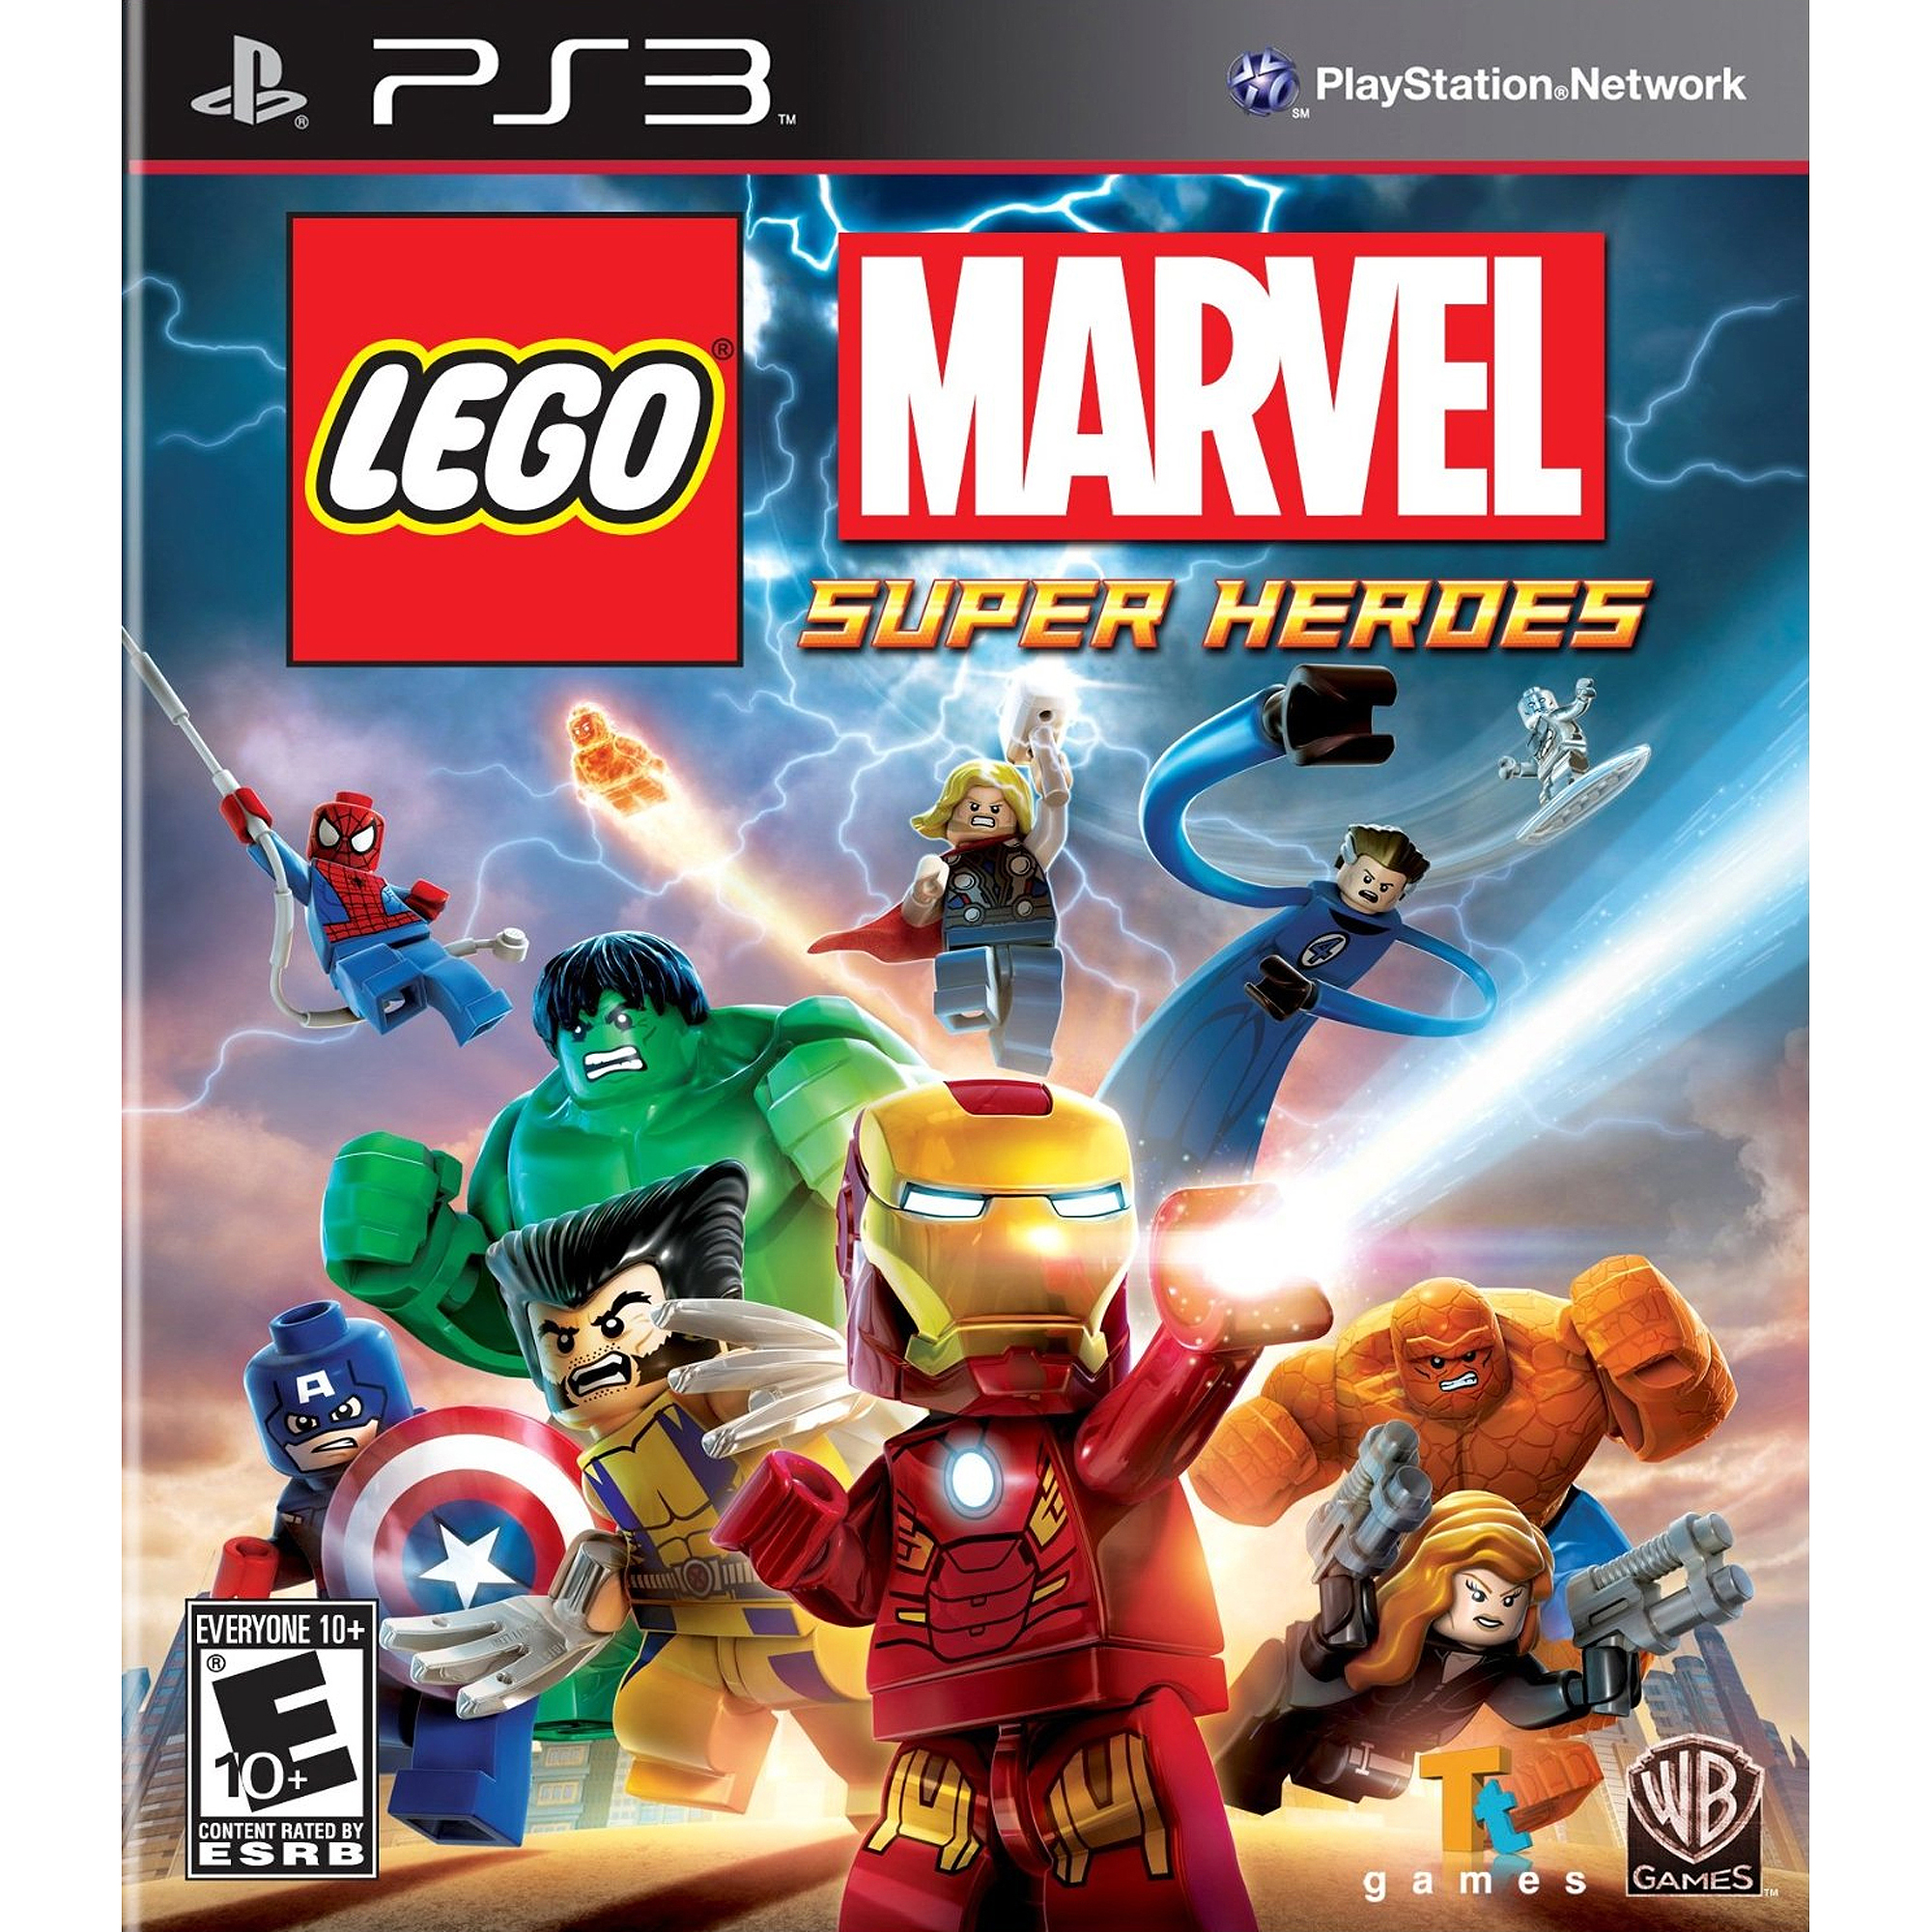 Lego Marvel Super Heroes (PS3) - Pre-Owned